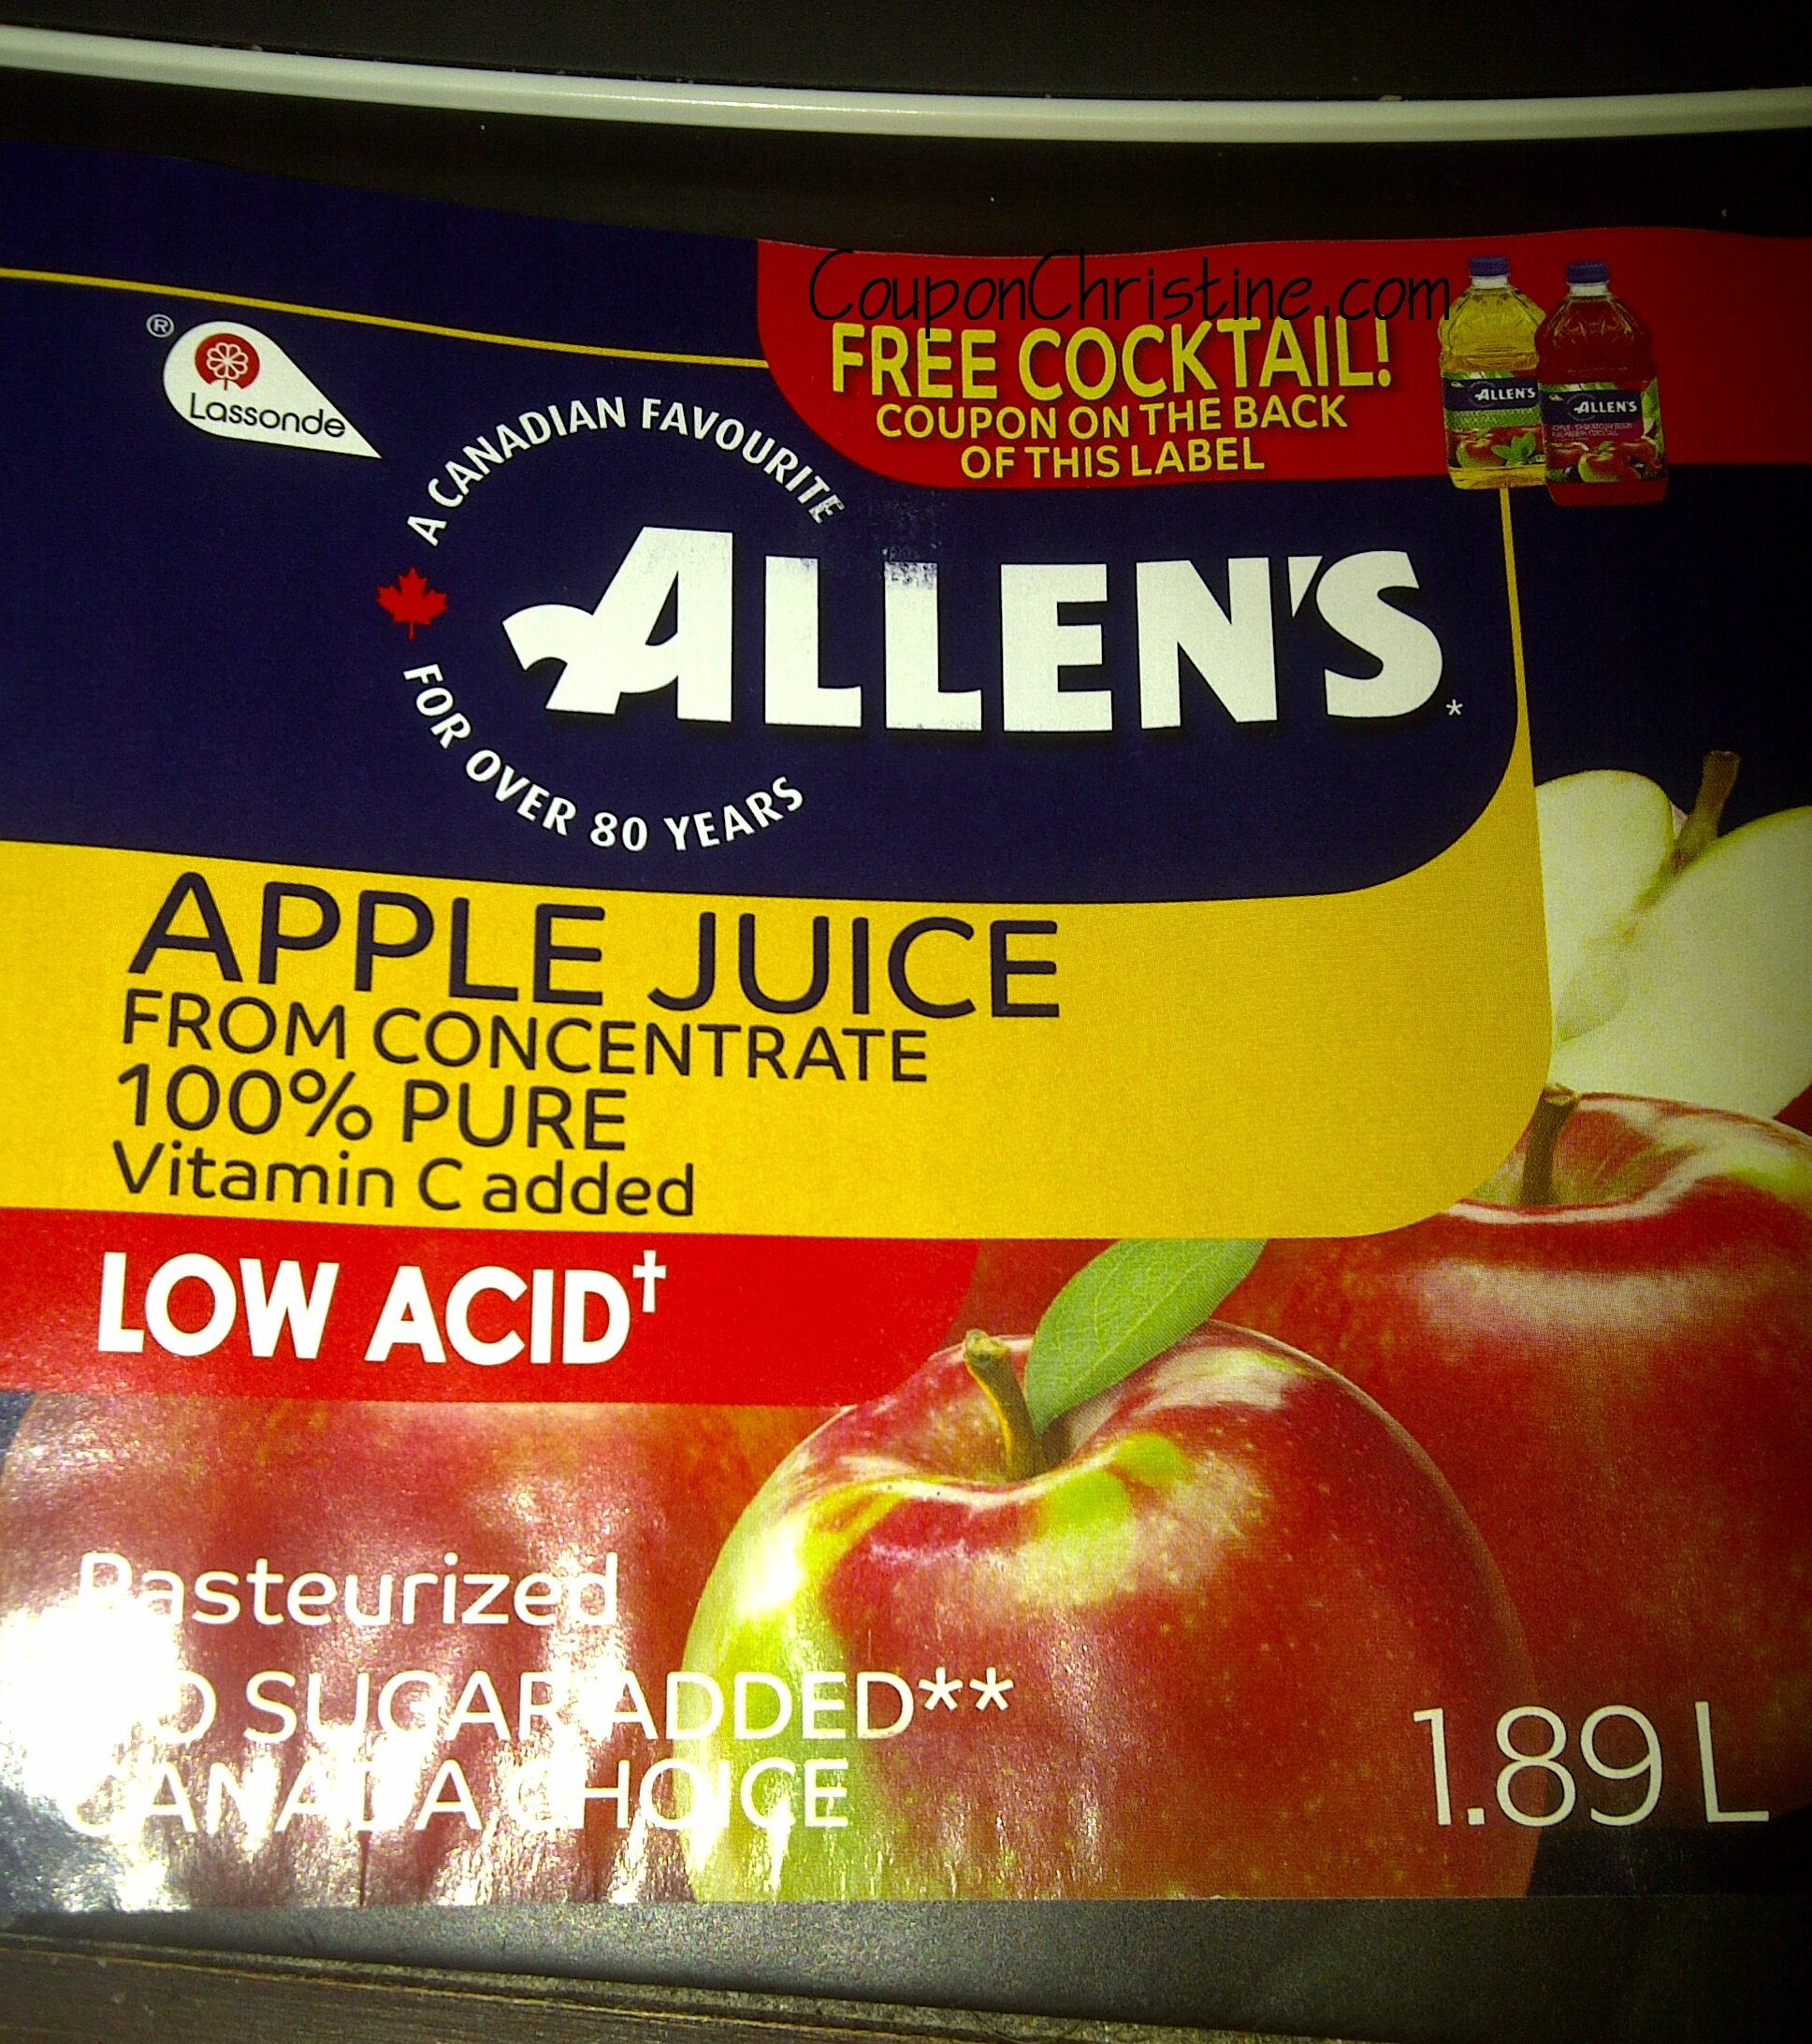 NEW FREE PRODUCT on Packaging of Allen's Apple Juice